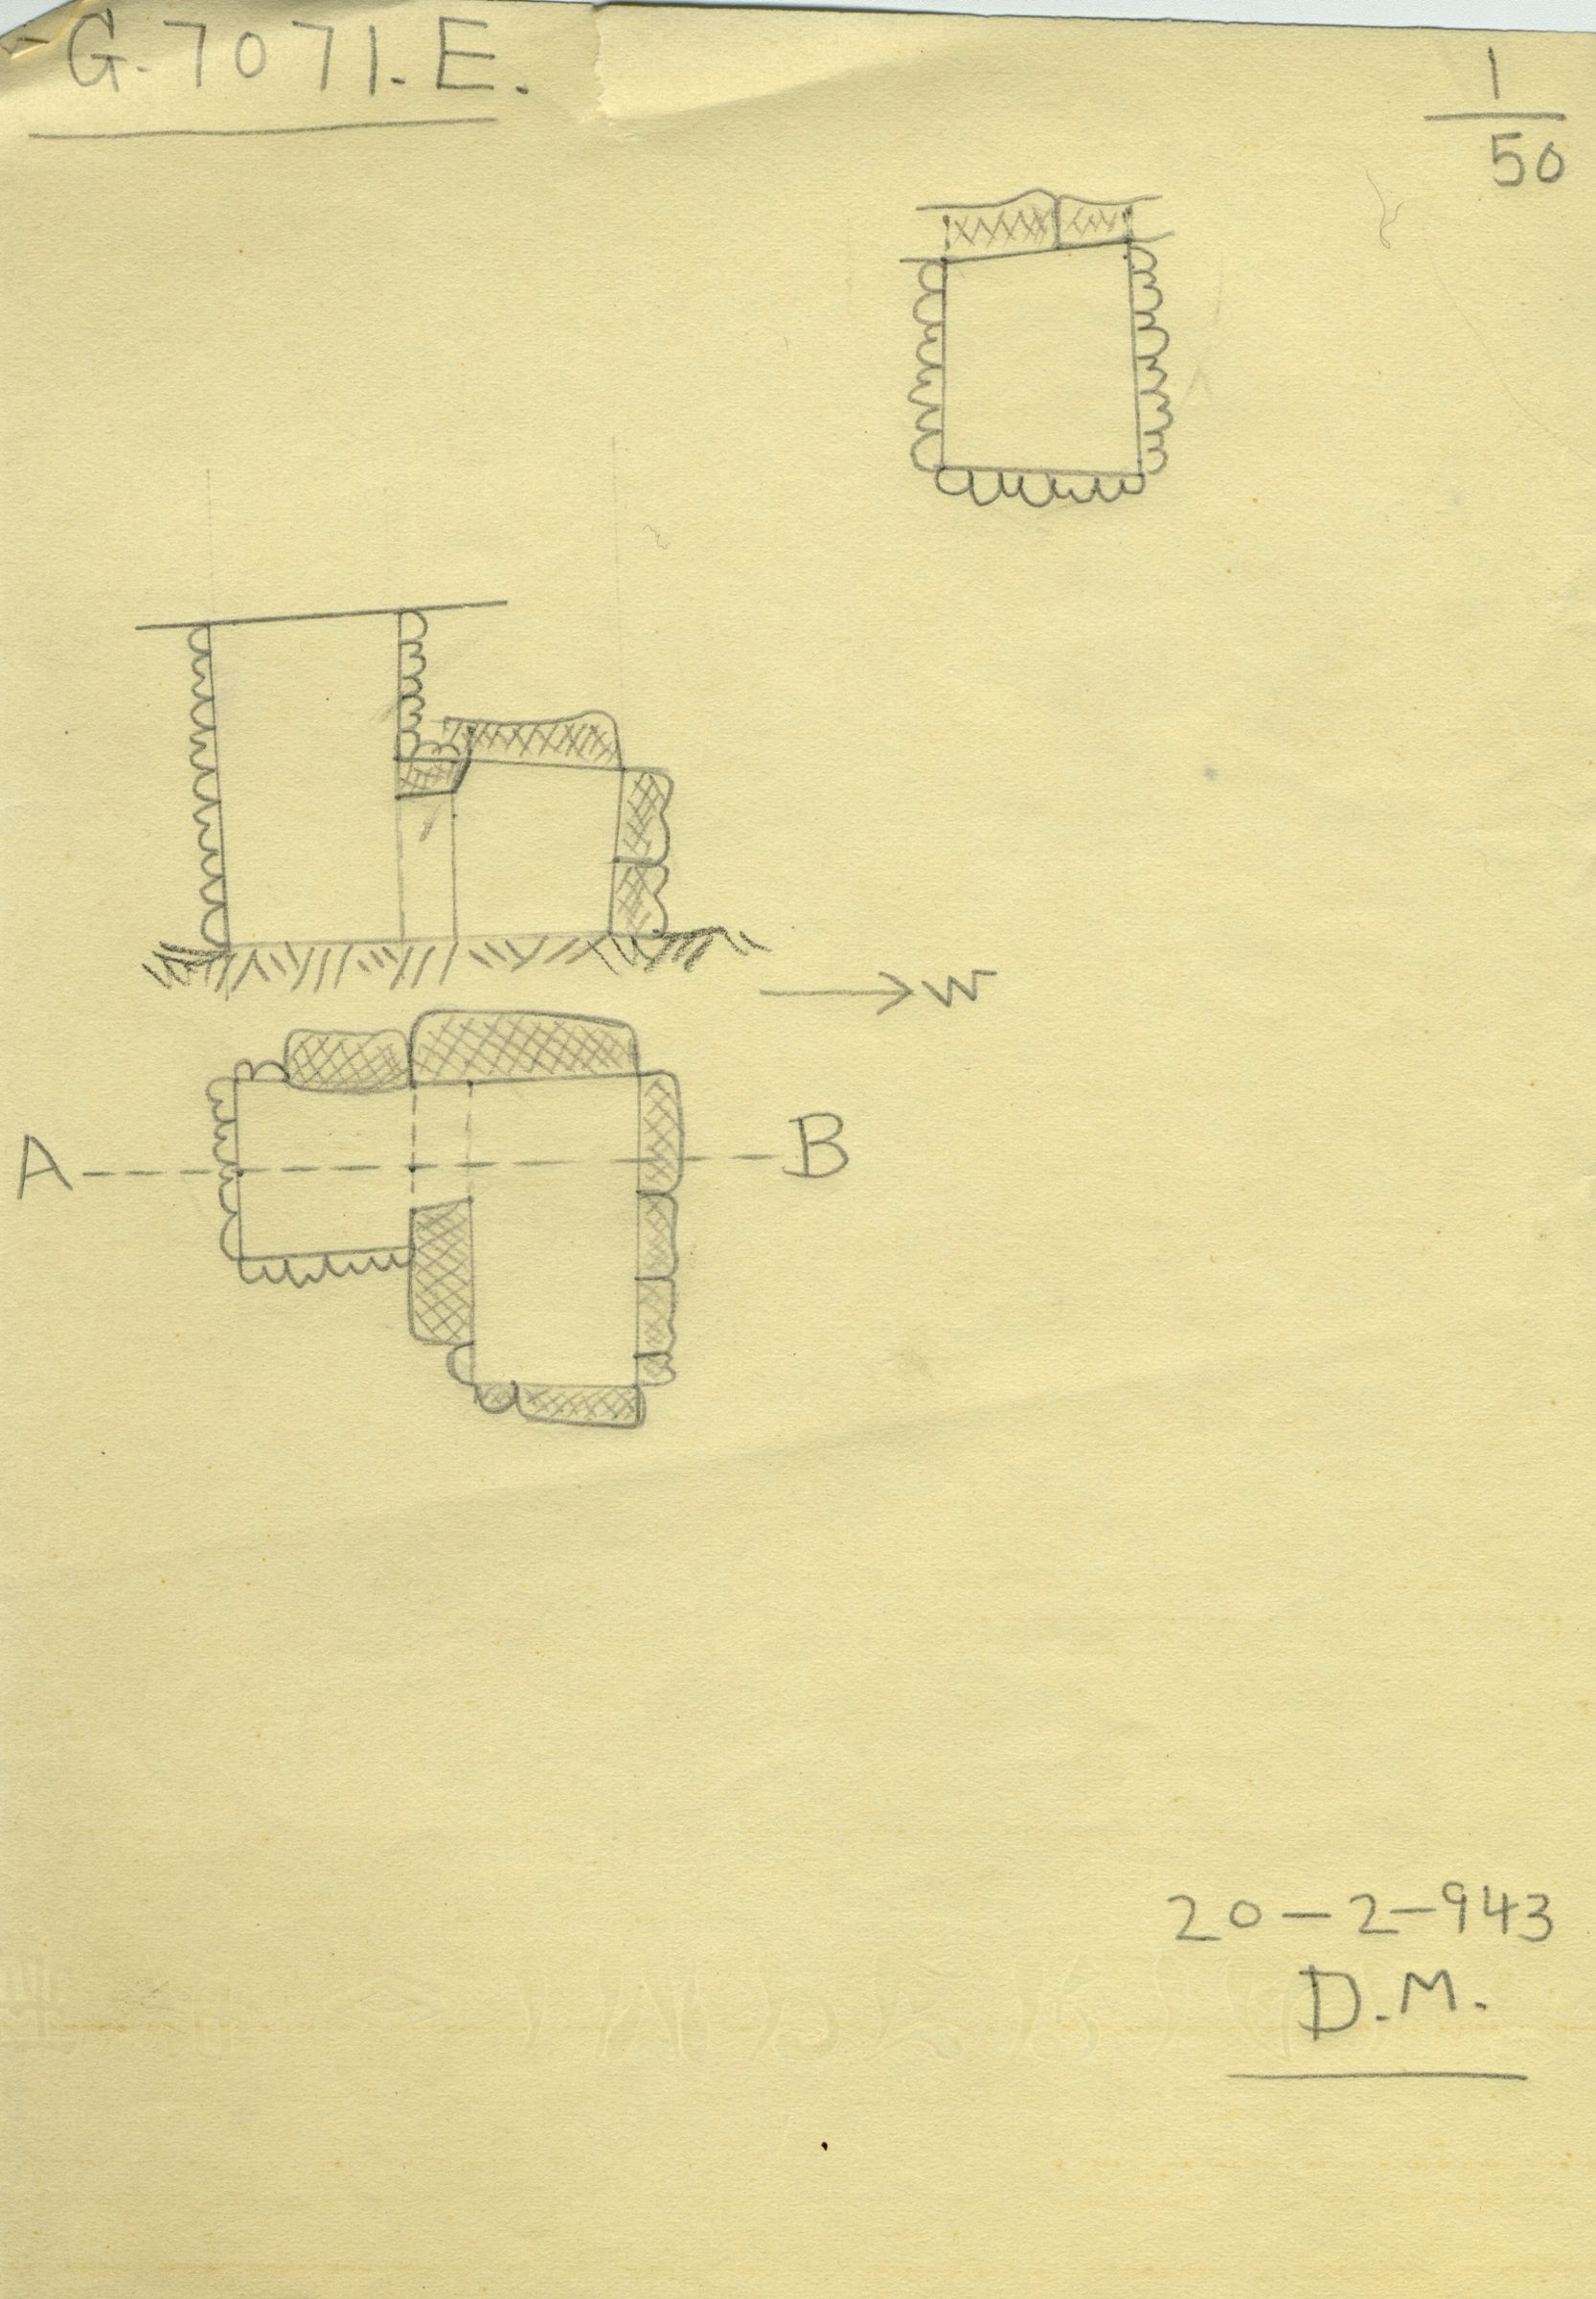 Maps and plans: G 7071, Shaft E